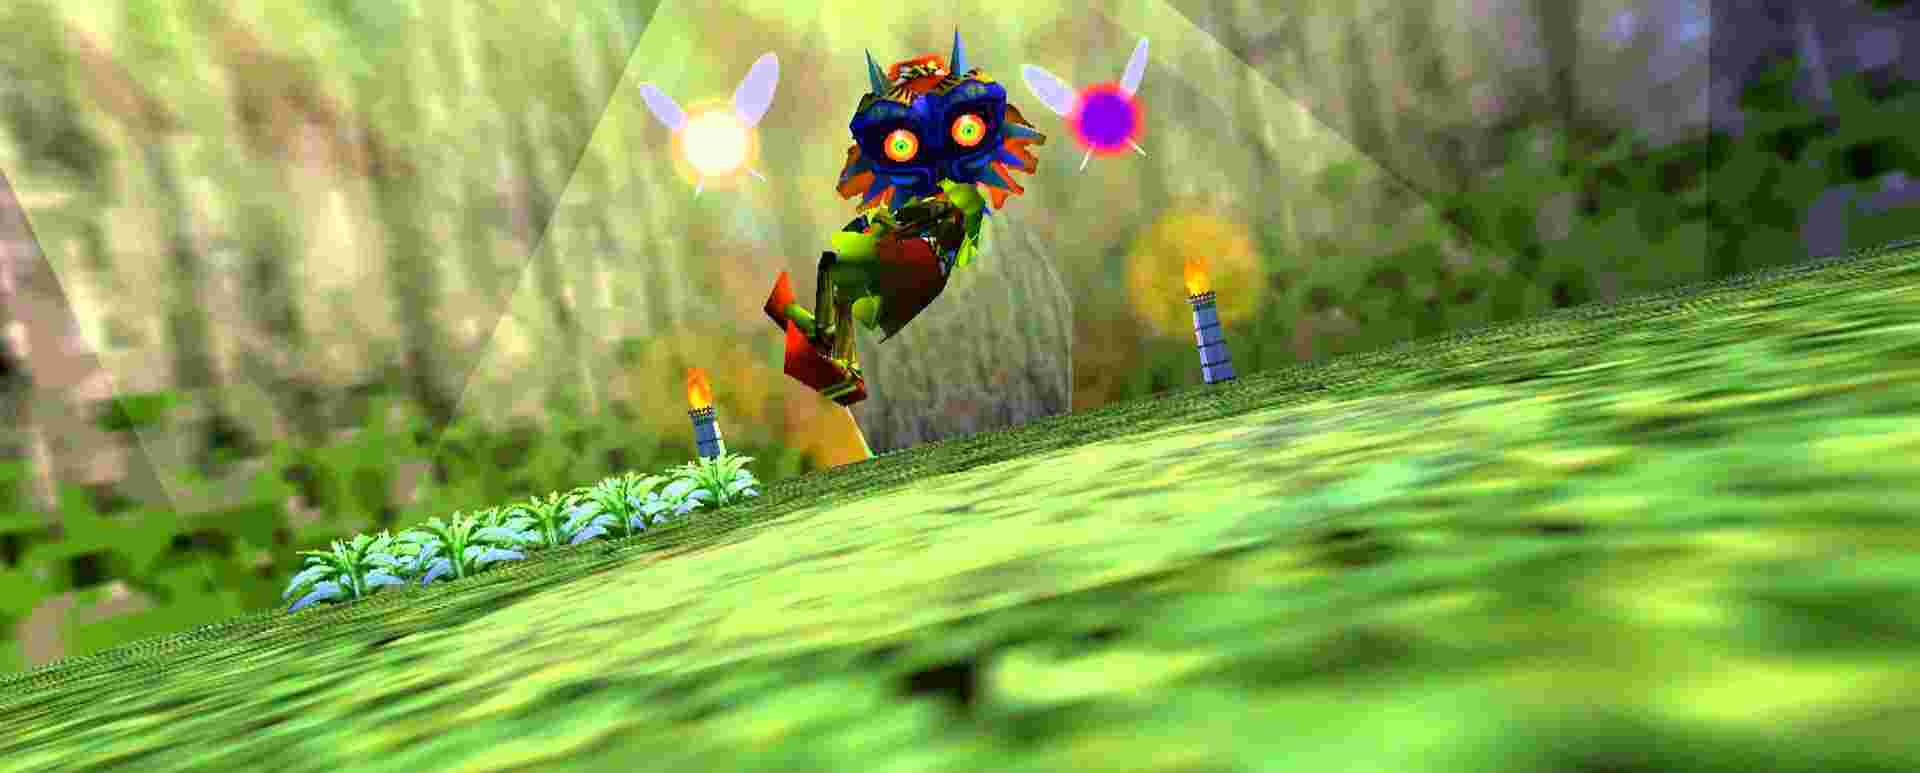 Нінтендоспектива — The Legend Of Zelda: The Majora's Mask